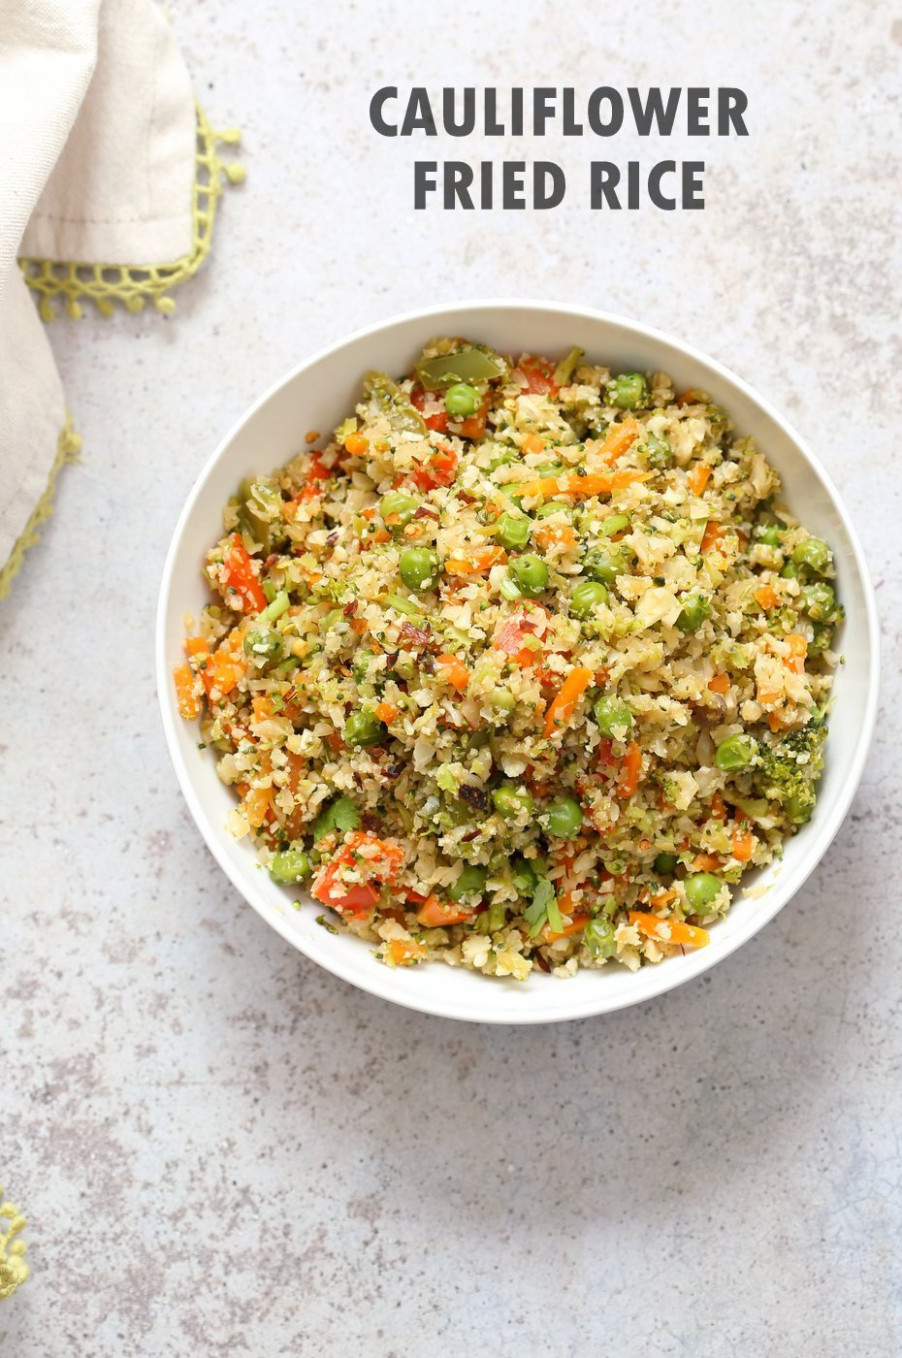 Vegan Cauliflower Fried Rice - 11 Pot - One Pot Rice Recipes Vegetarian Indian